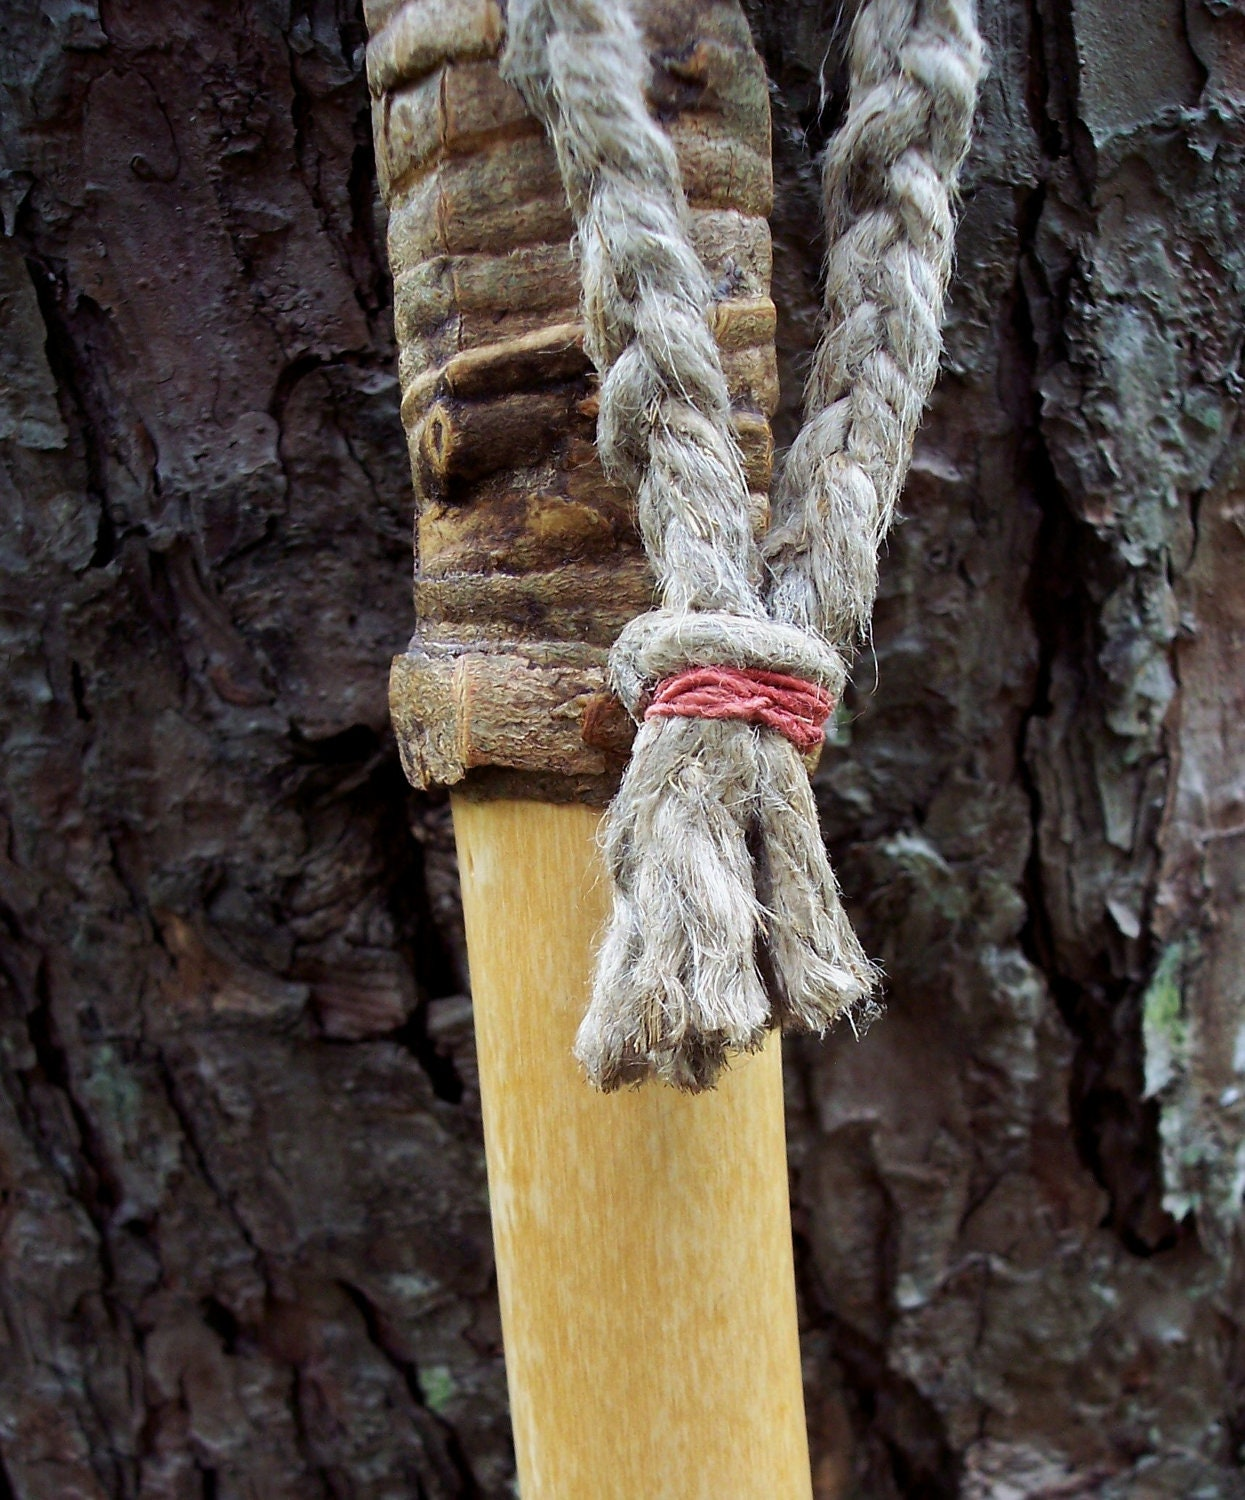 Handmade Walking Stick With Hemp And Natural Finish 60